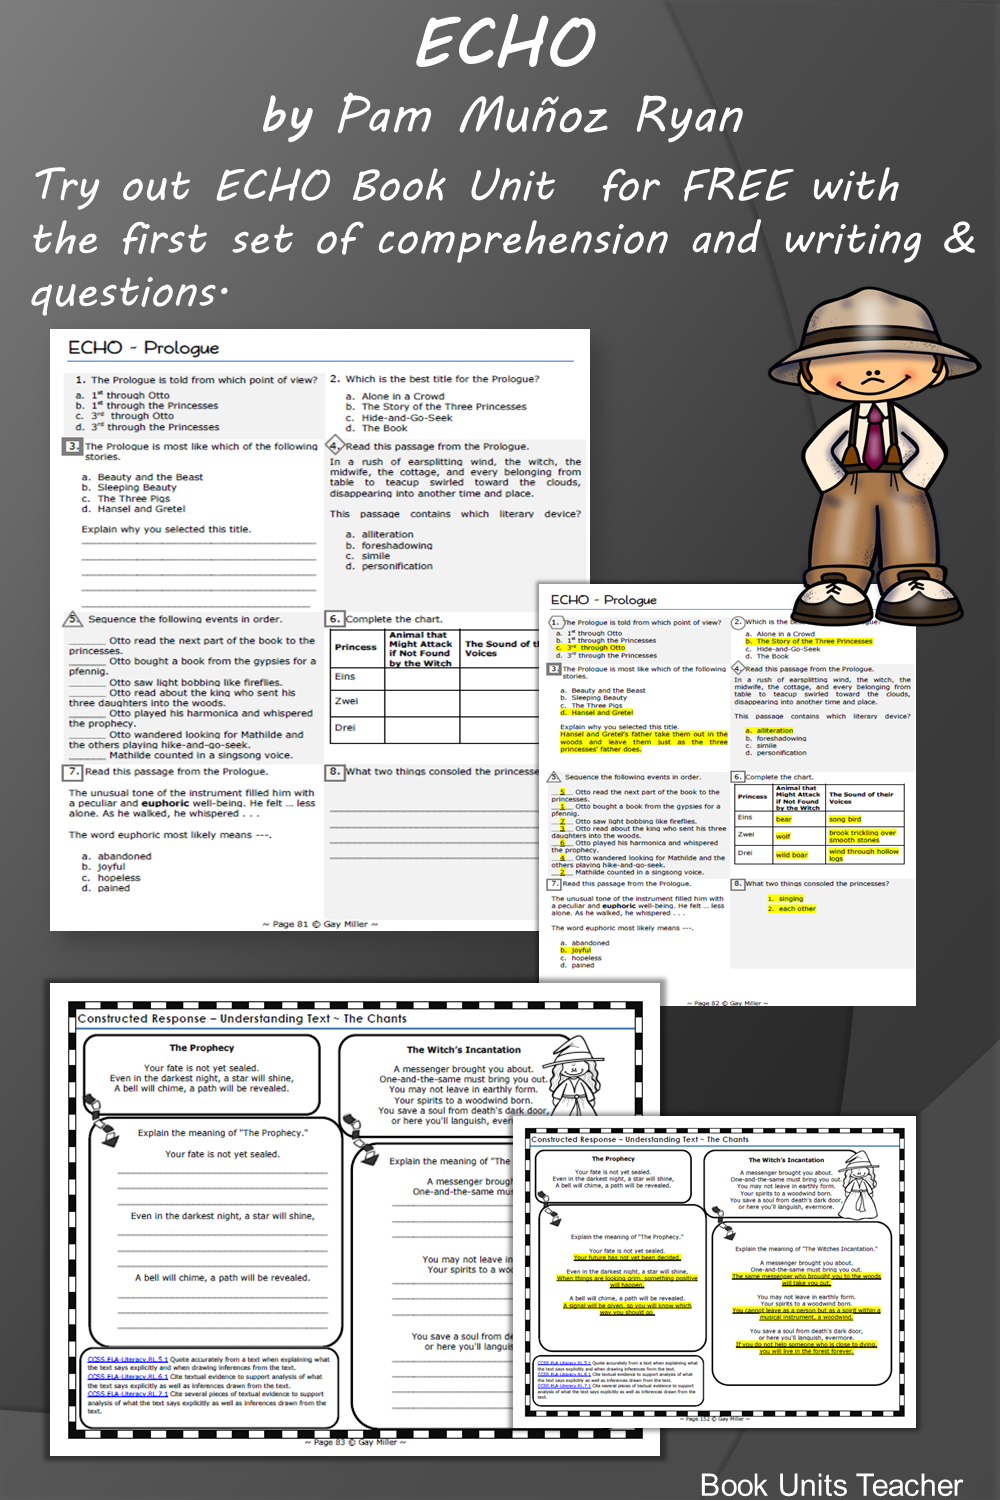 ECHO by Pam Munoz Ryan Teaching Ideas - Grab a free vocabulary, comprehension questions, and constructed writing prompts which is great for upper elementary including 3rd, 4th, and 5th graders.